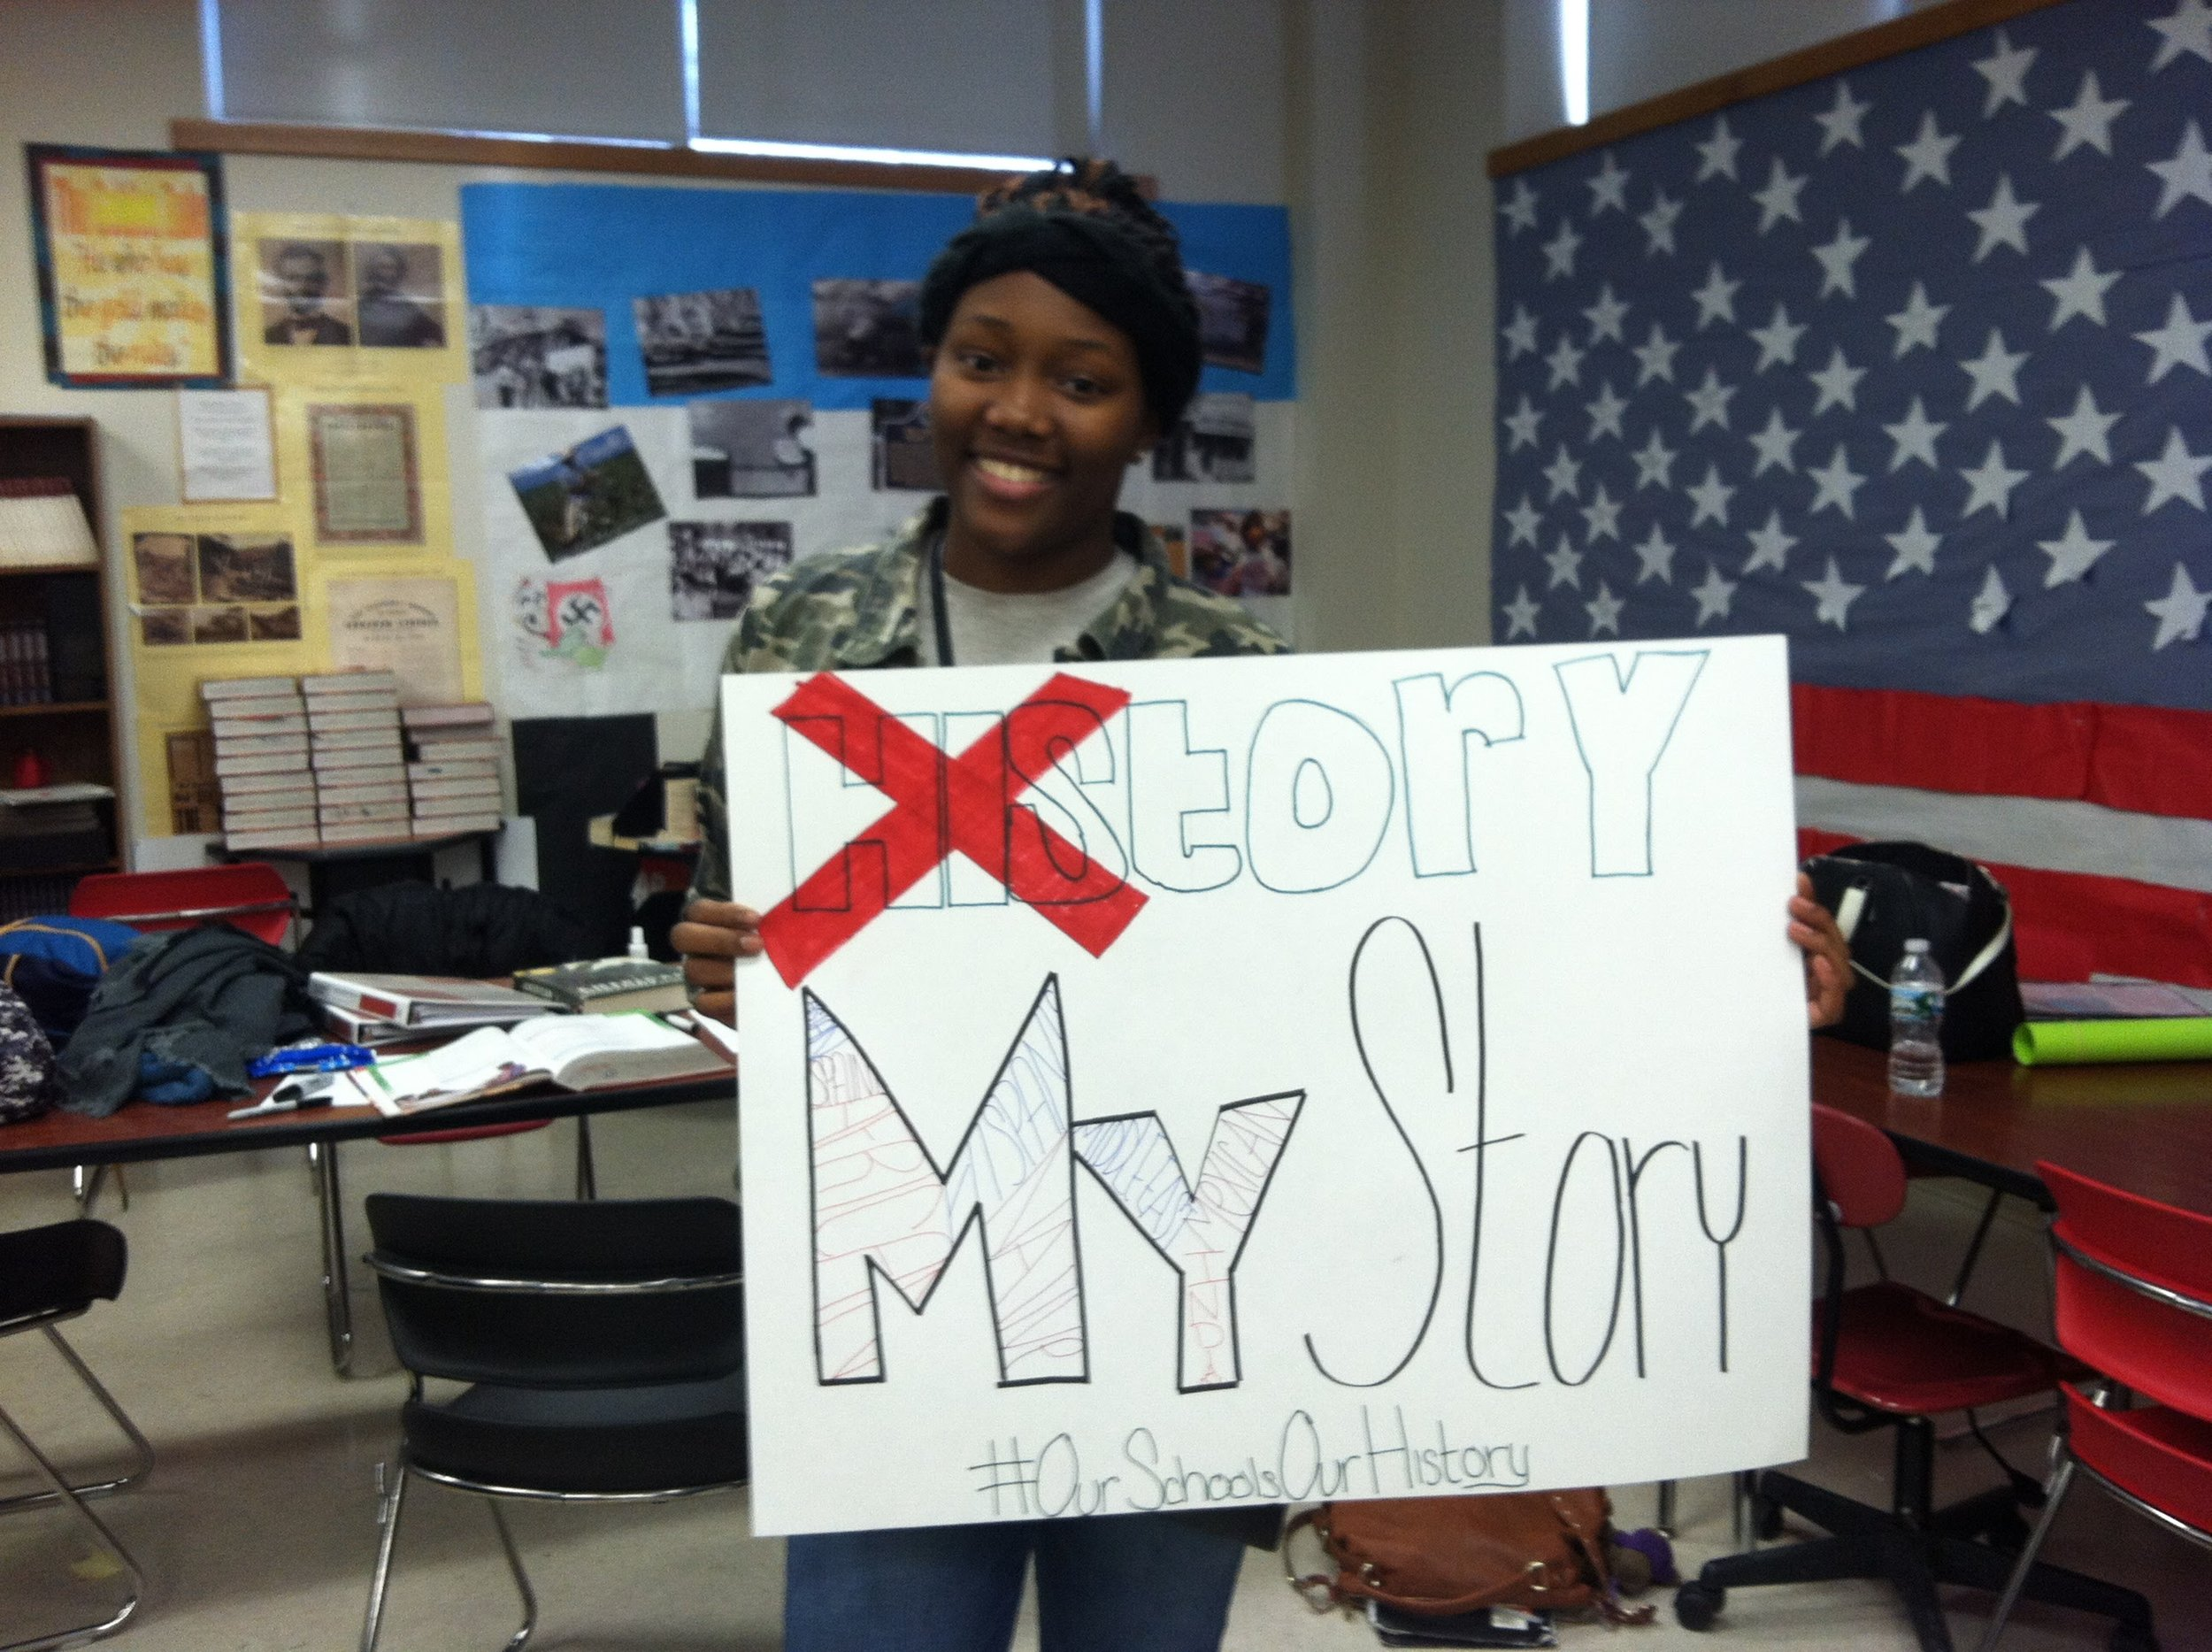 "A young female black high school student holds a sign with the word 'his' crossed out in 'history'. Beneath reads, ""My Story #OurSchoolOurHistory""."